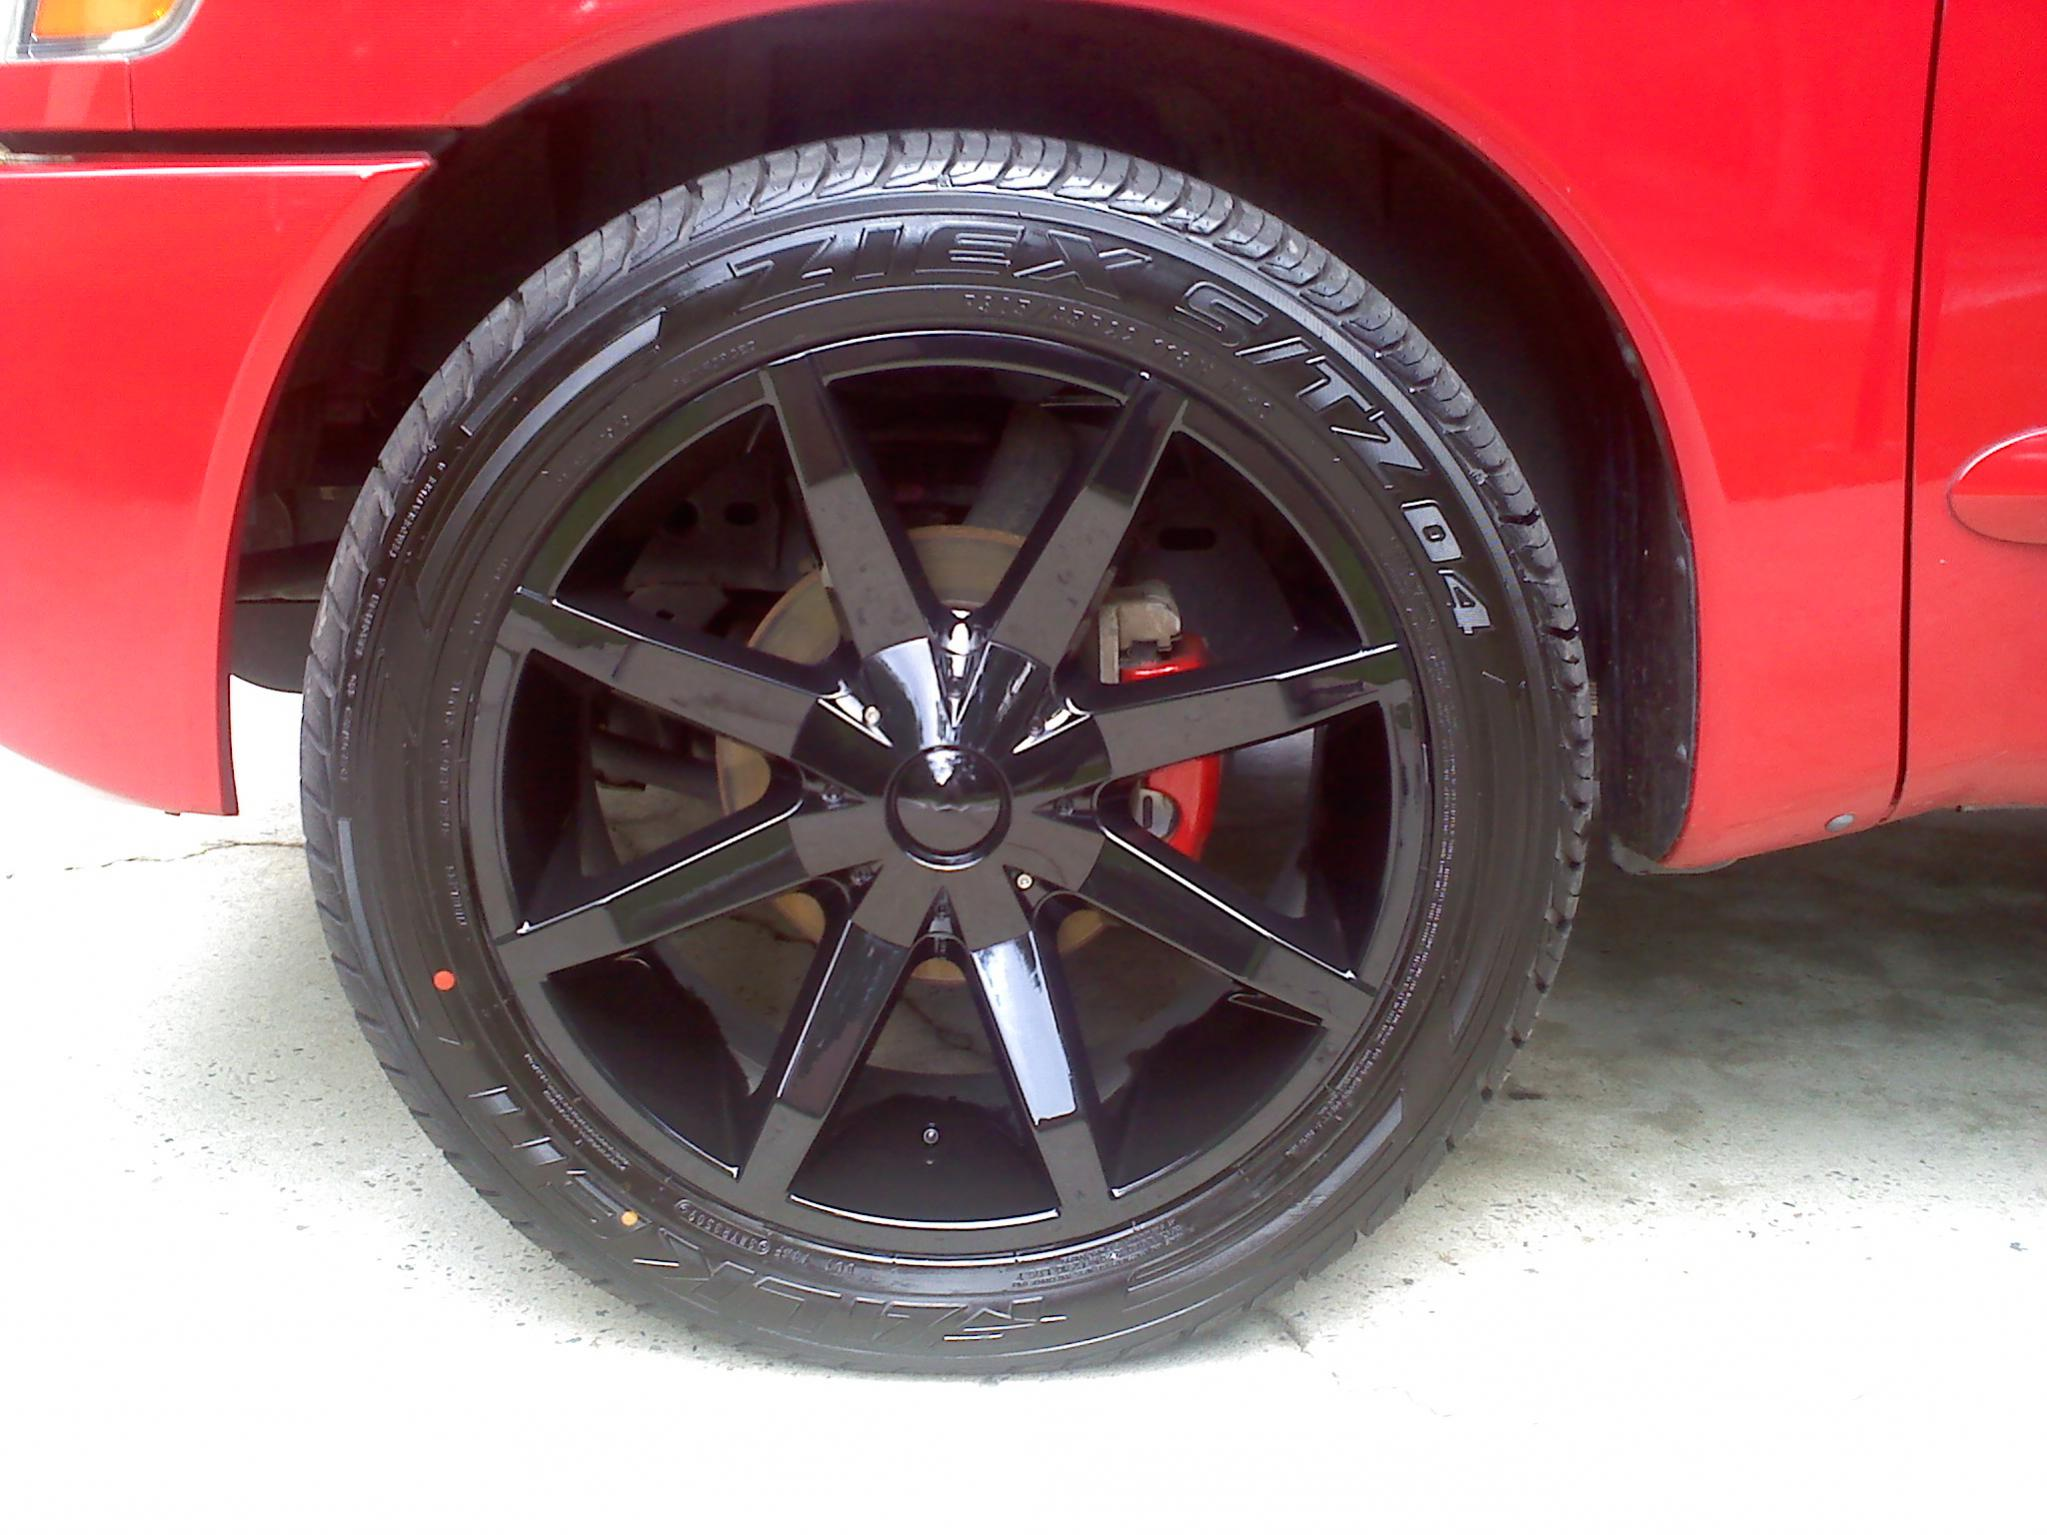 22 inch wheel pic thread-0703001750a.jpg